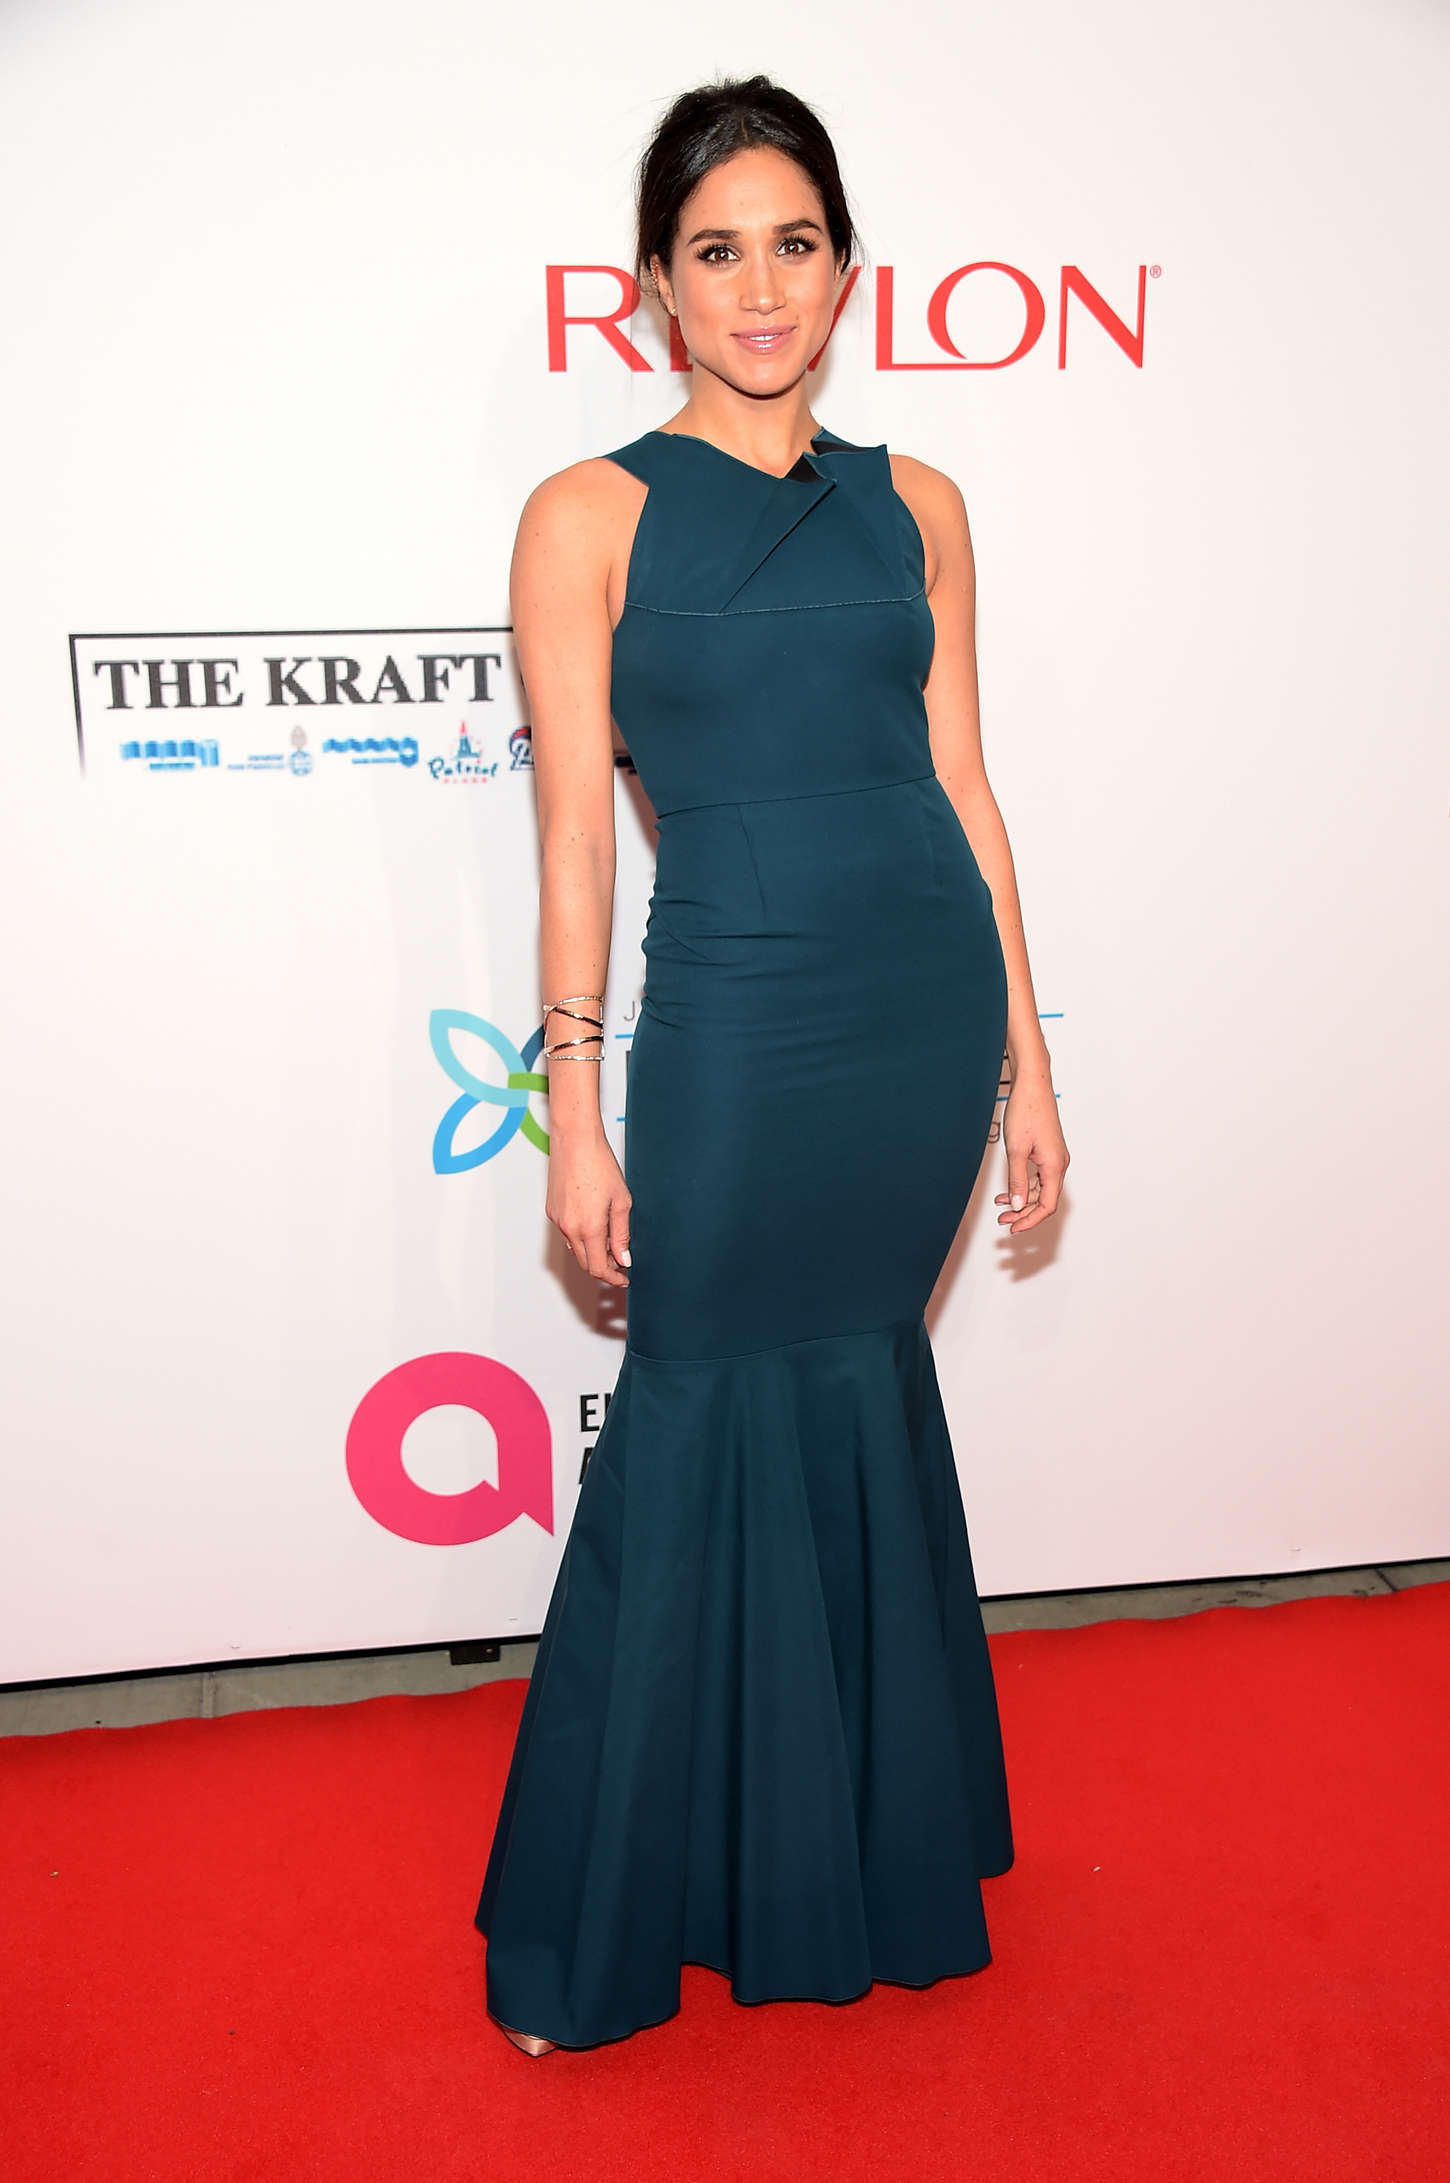 Wearing a Roland Mouret gown at the Elton John AIDS Foundation in 2014 via Instagram